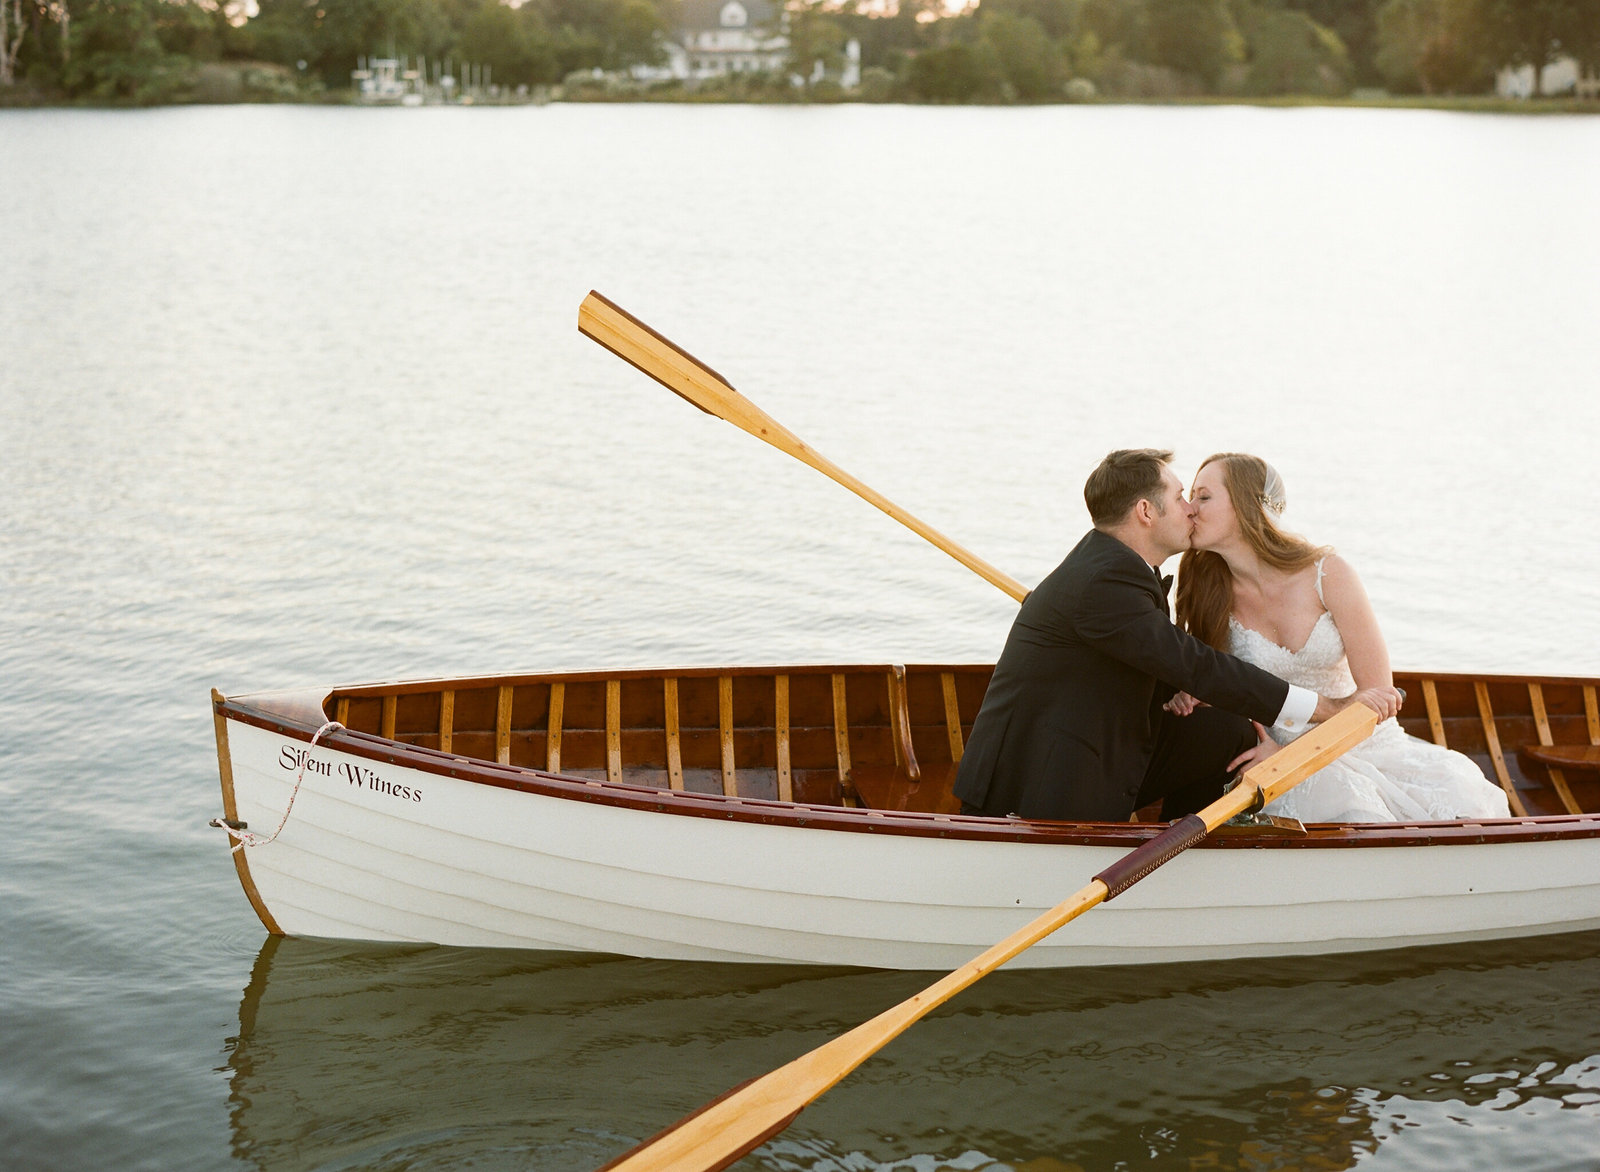 Pamela Barefoot, Atrendy, Warner Hall wedding, Virginia wedding, rowboat, wedding getaway